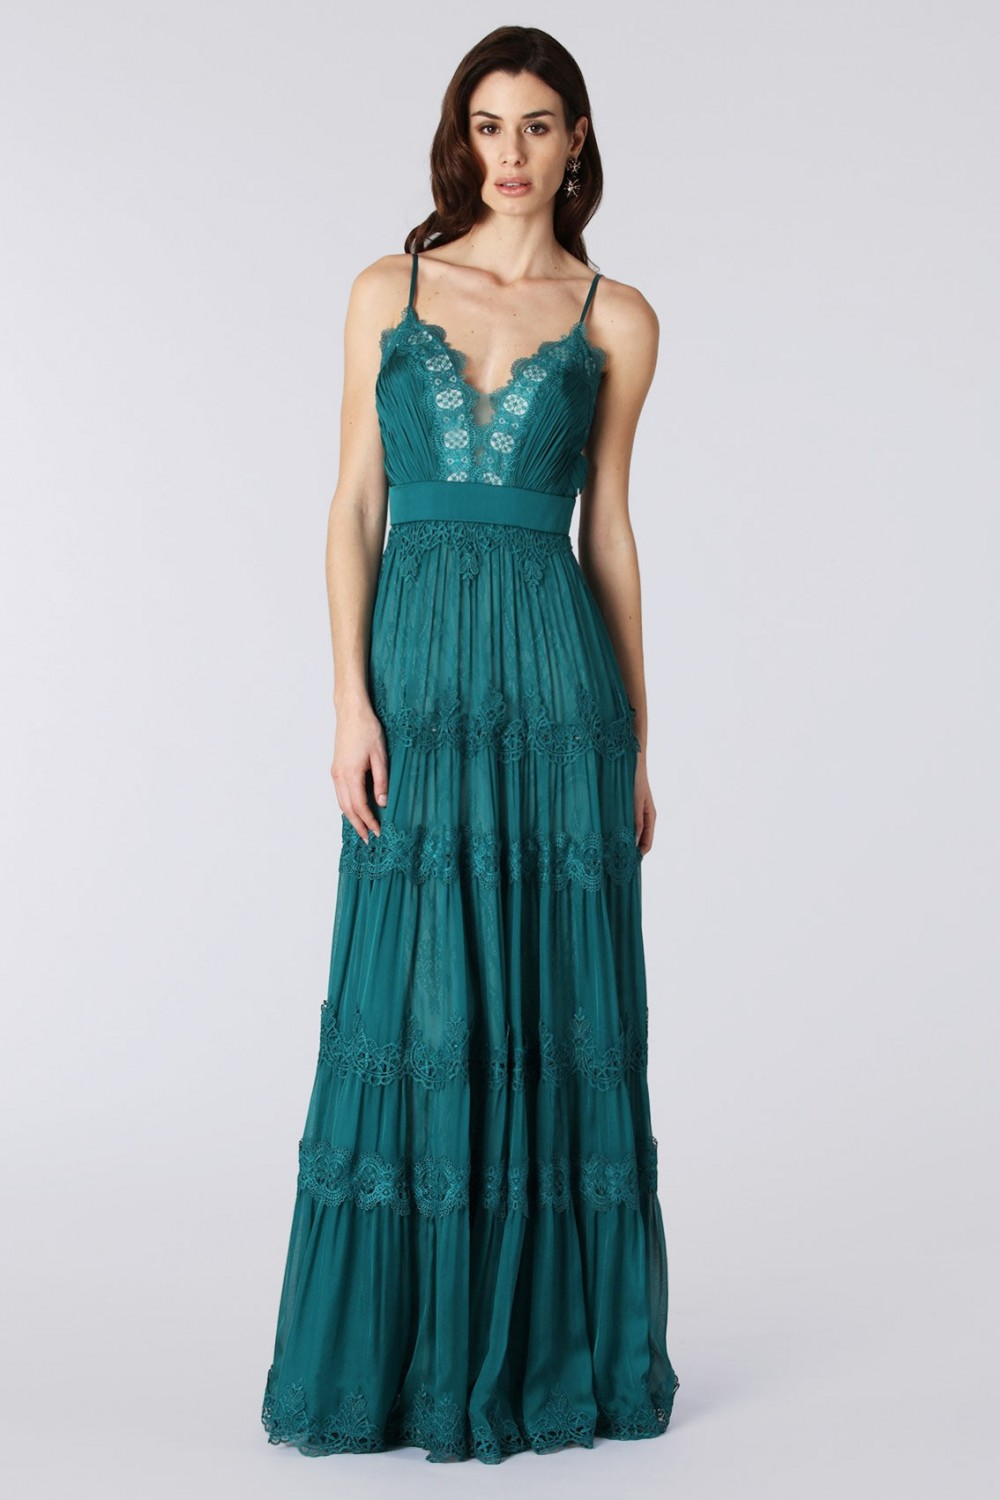 Green dress with lace embroidery and worked neckline